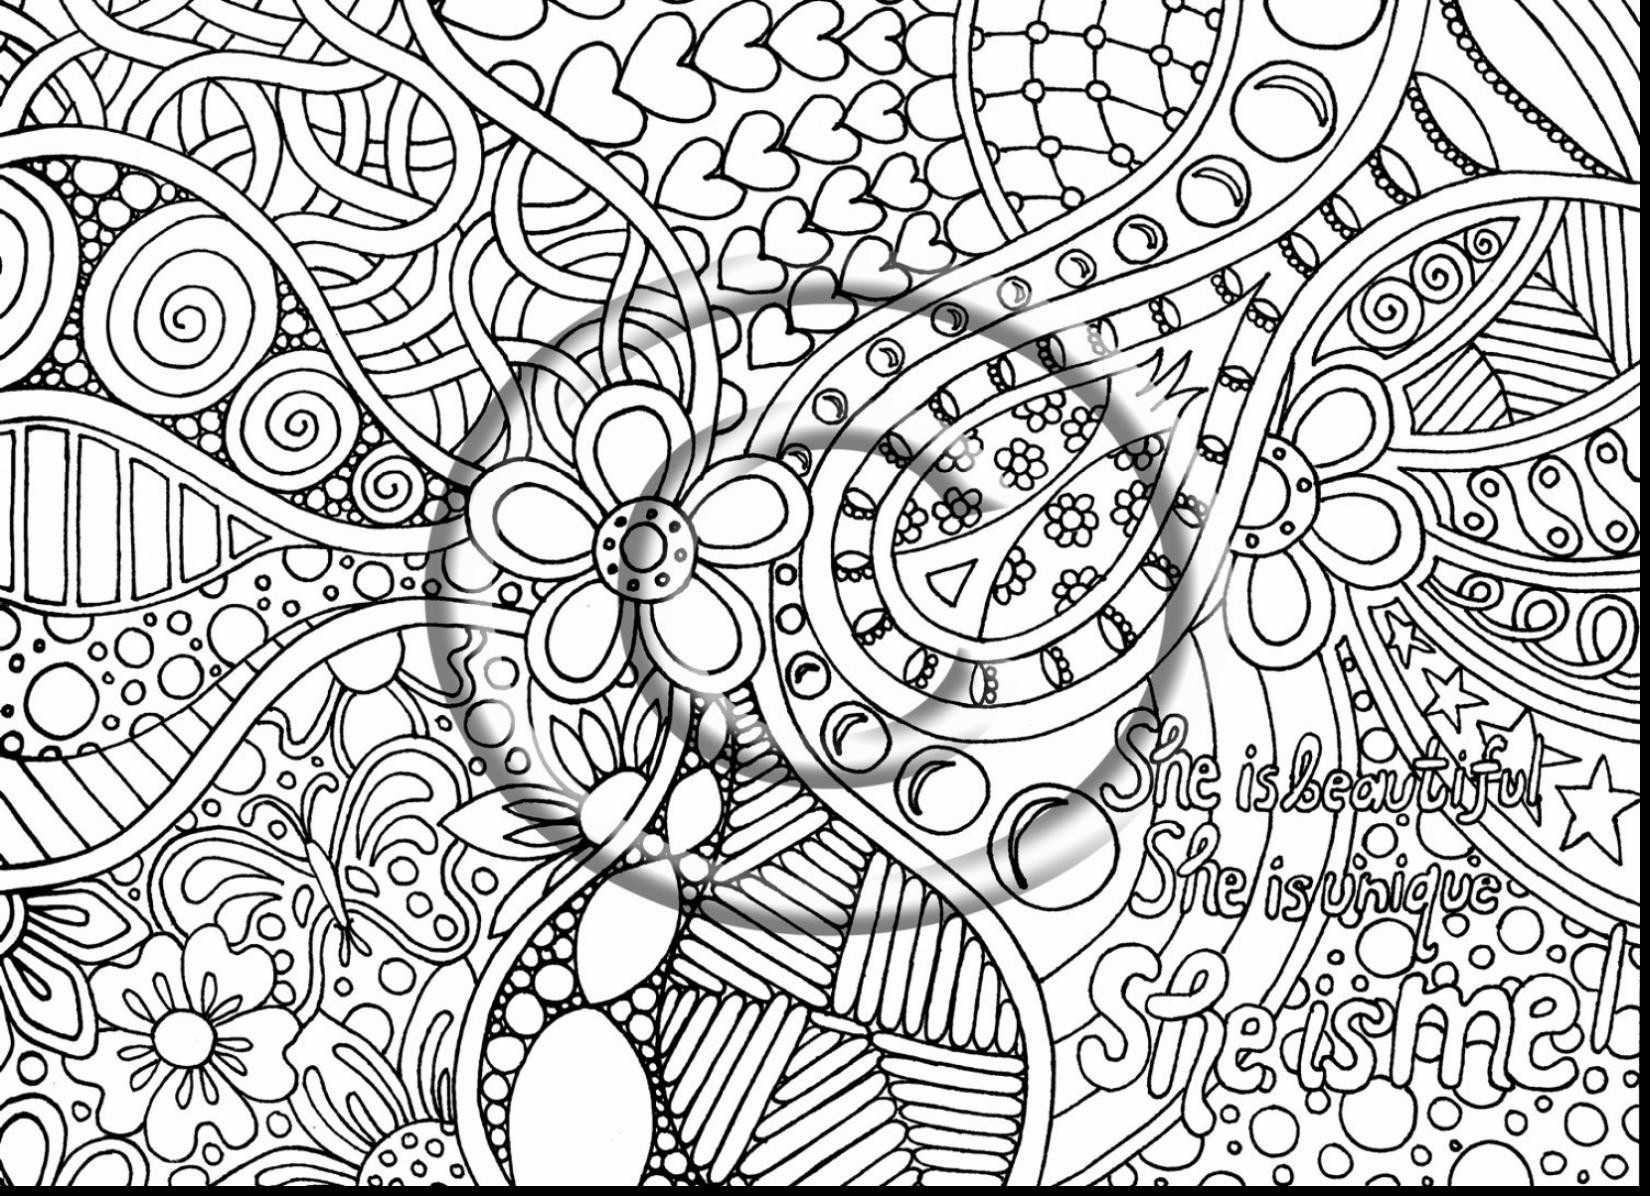 Trippy Coloring Pages Psychedelic Coloring Pages For Adults Fresh Terrific Psychedelic